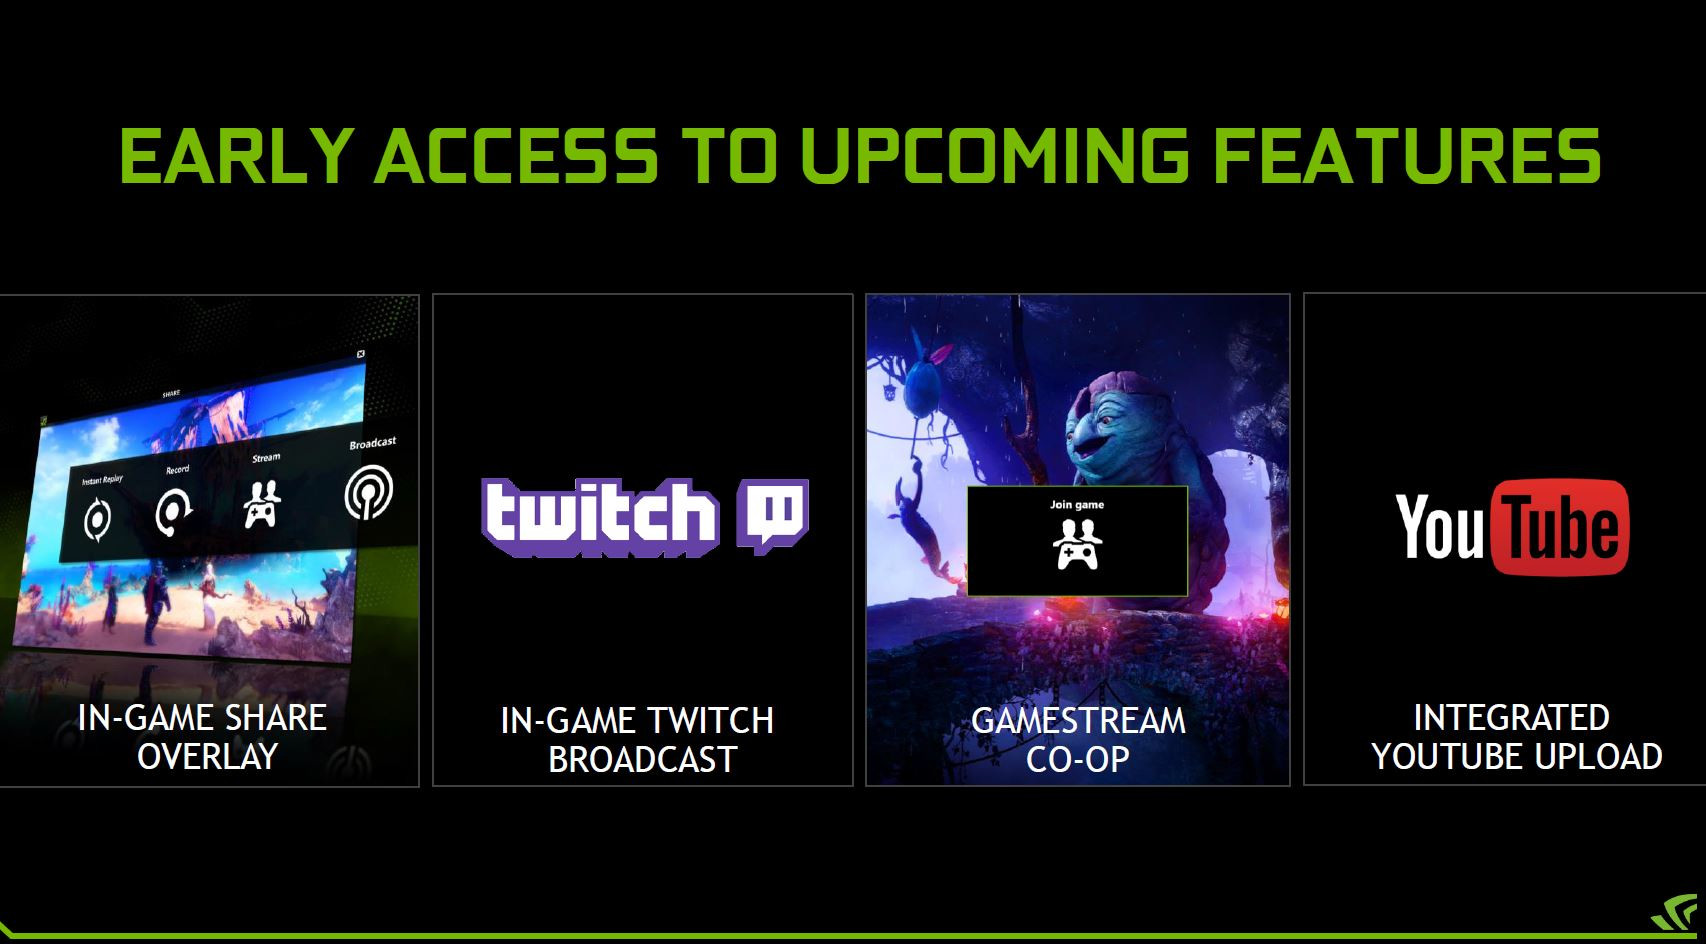 NVIDIA Adds Five New Features to GeForce Experience